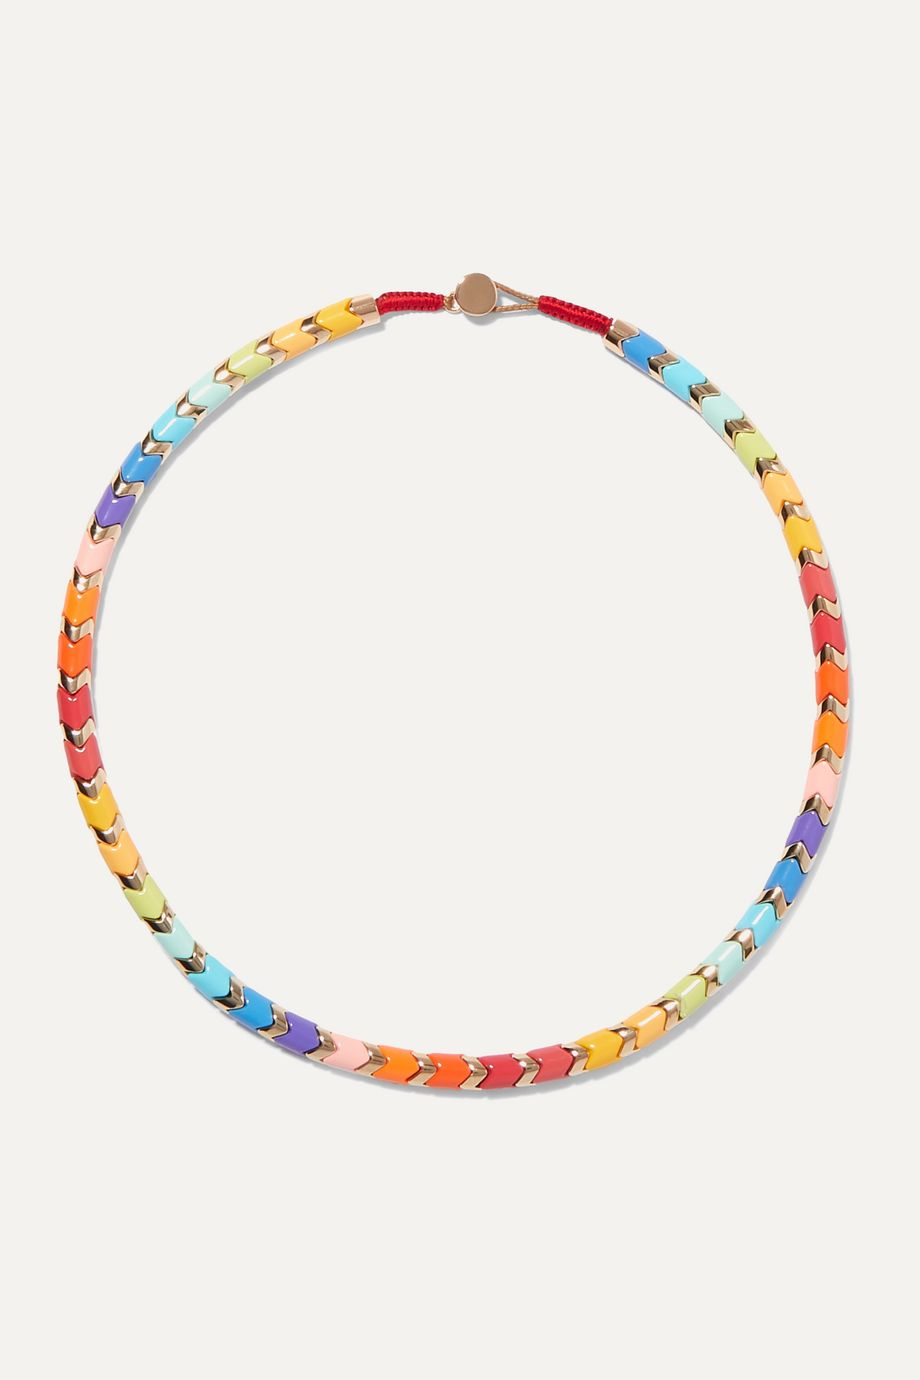 Roxanne Assoulin Golden Rainbow gold-tone and enamel necklace